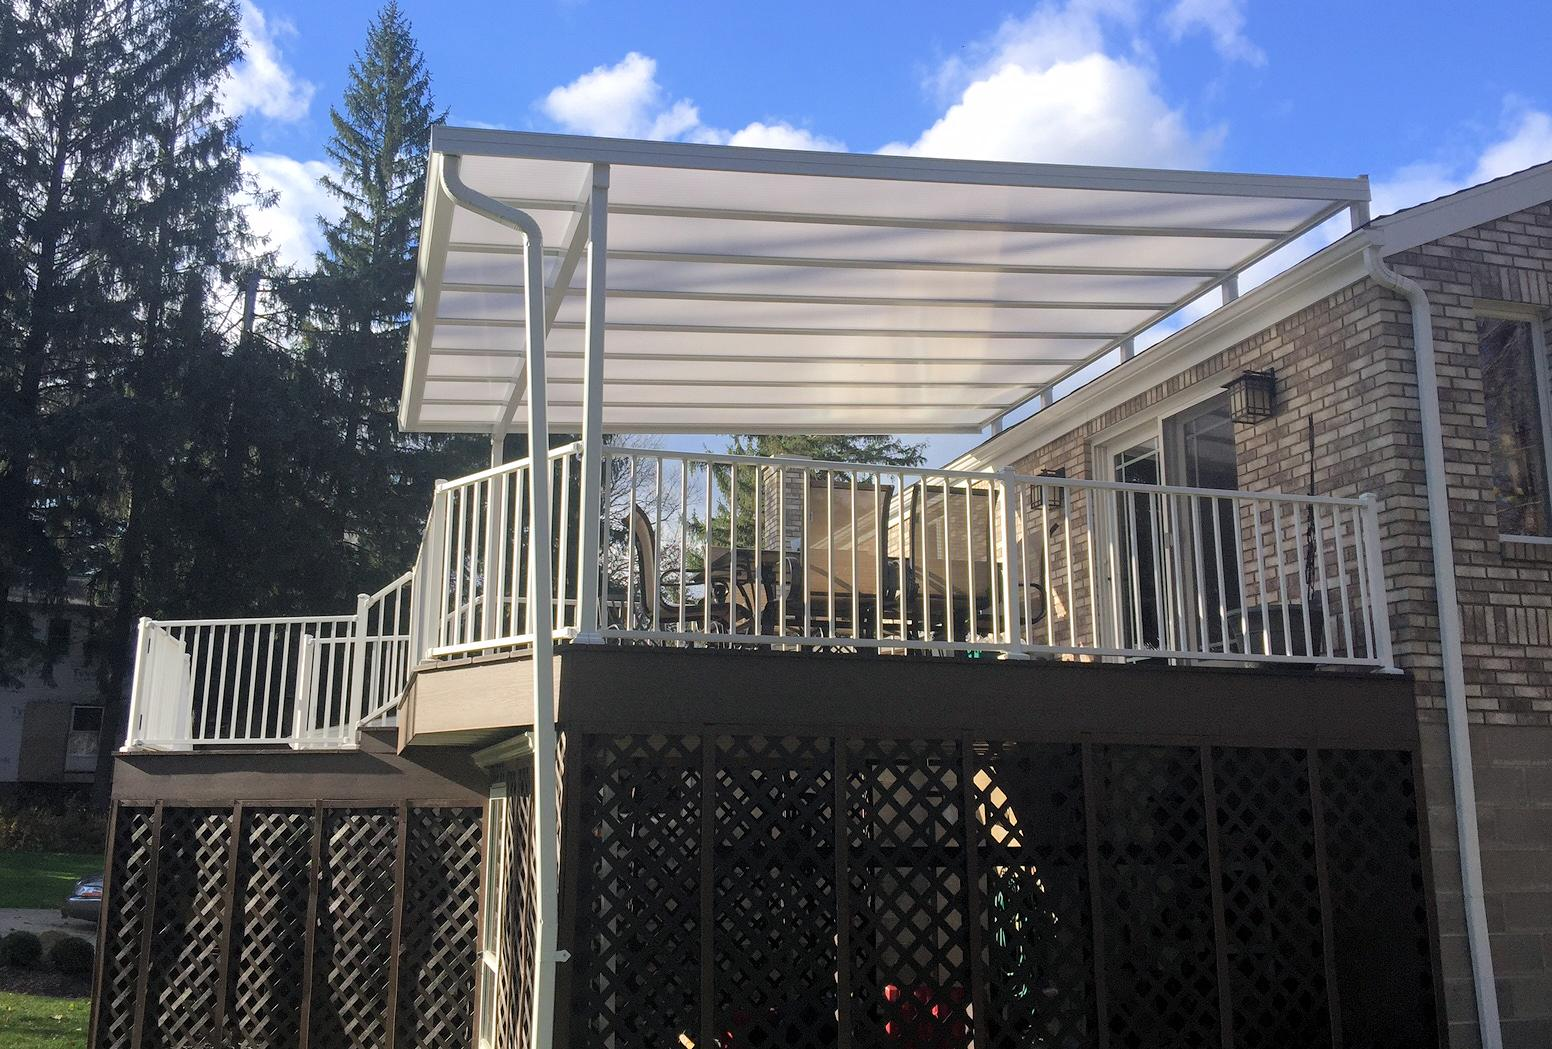 Awnings pittsburgh deck king usa pittsburgh for Affordable furniture pittsburgh